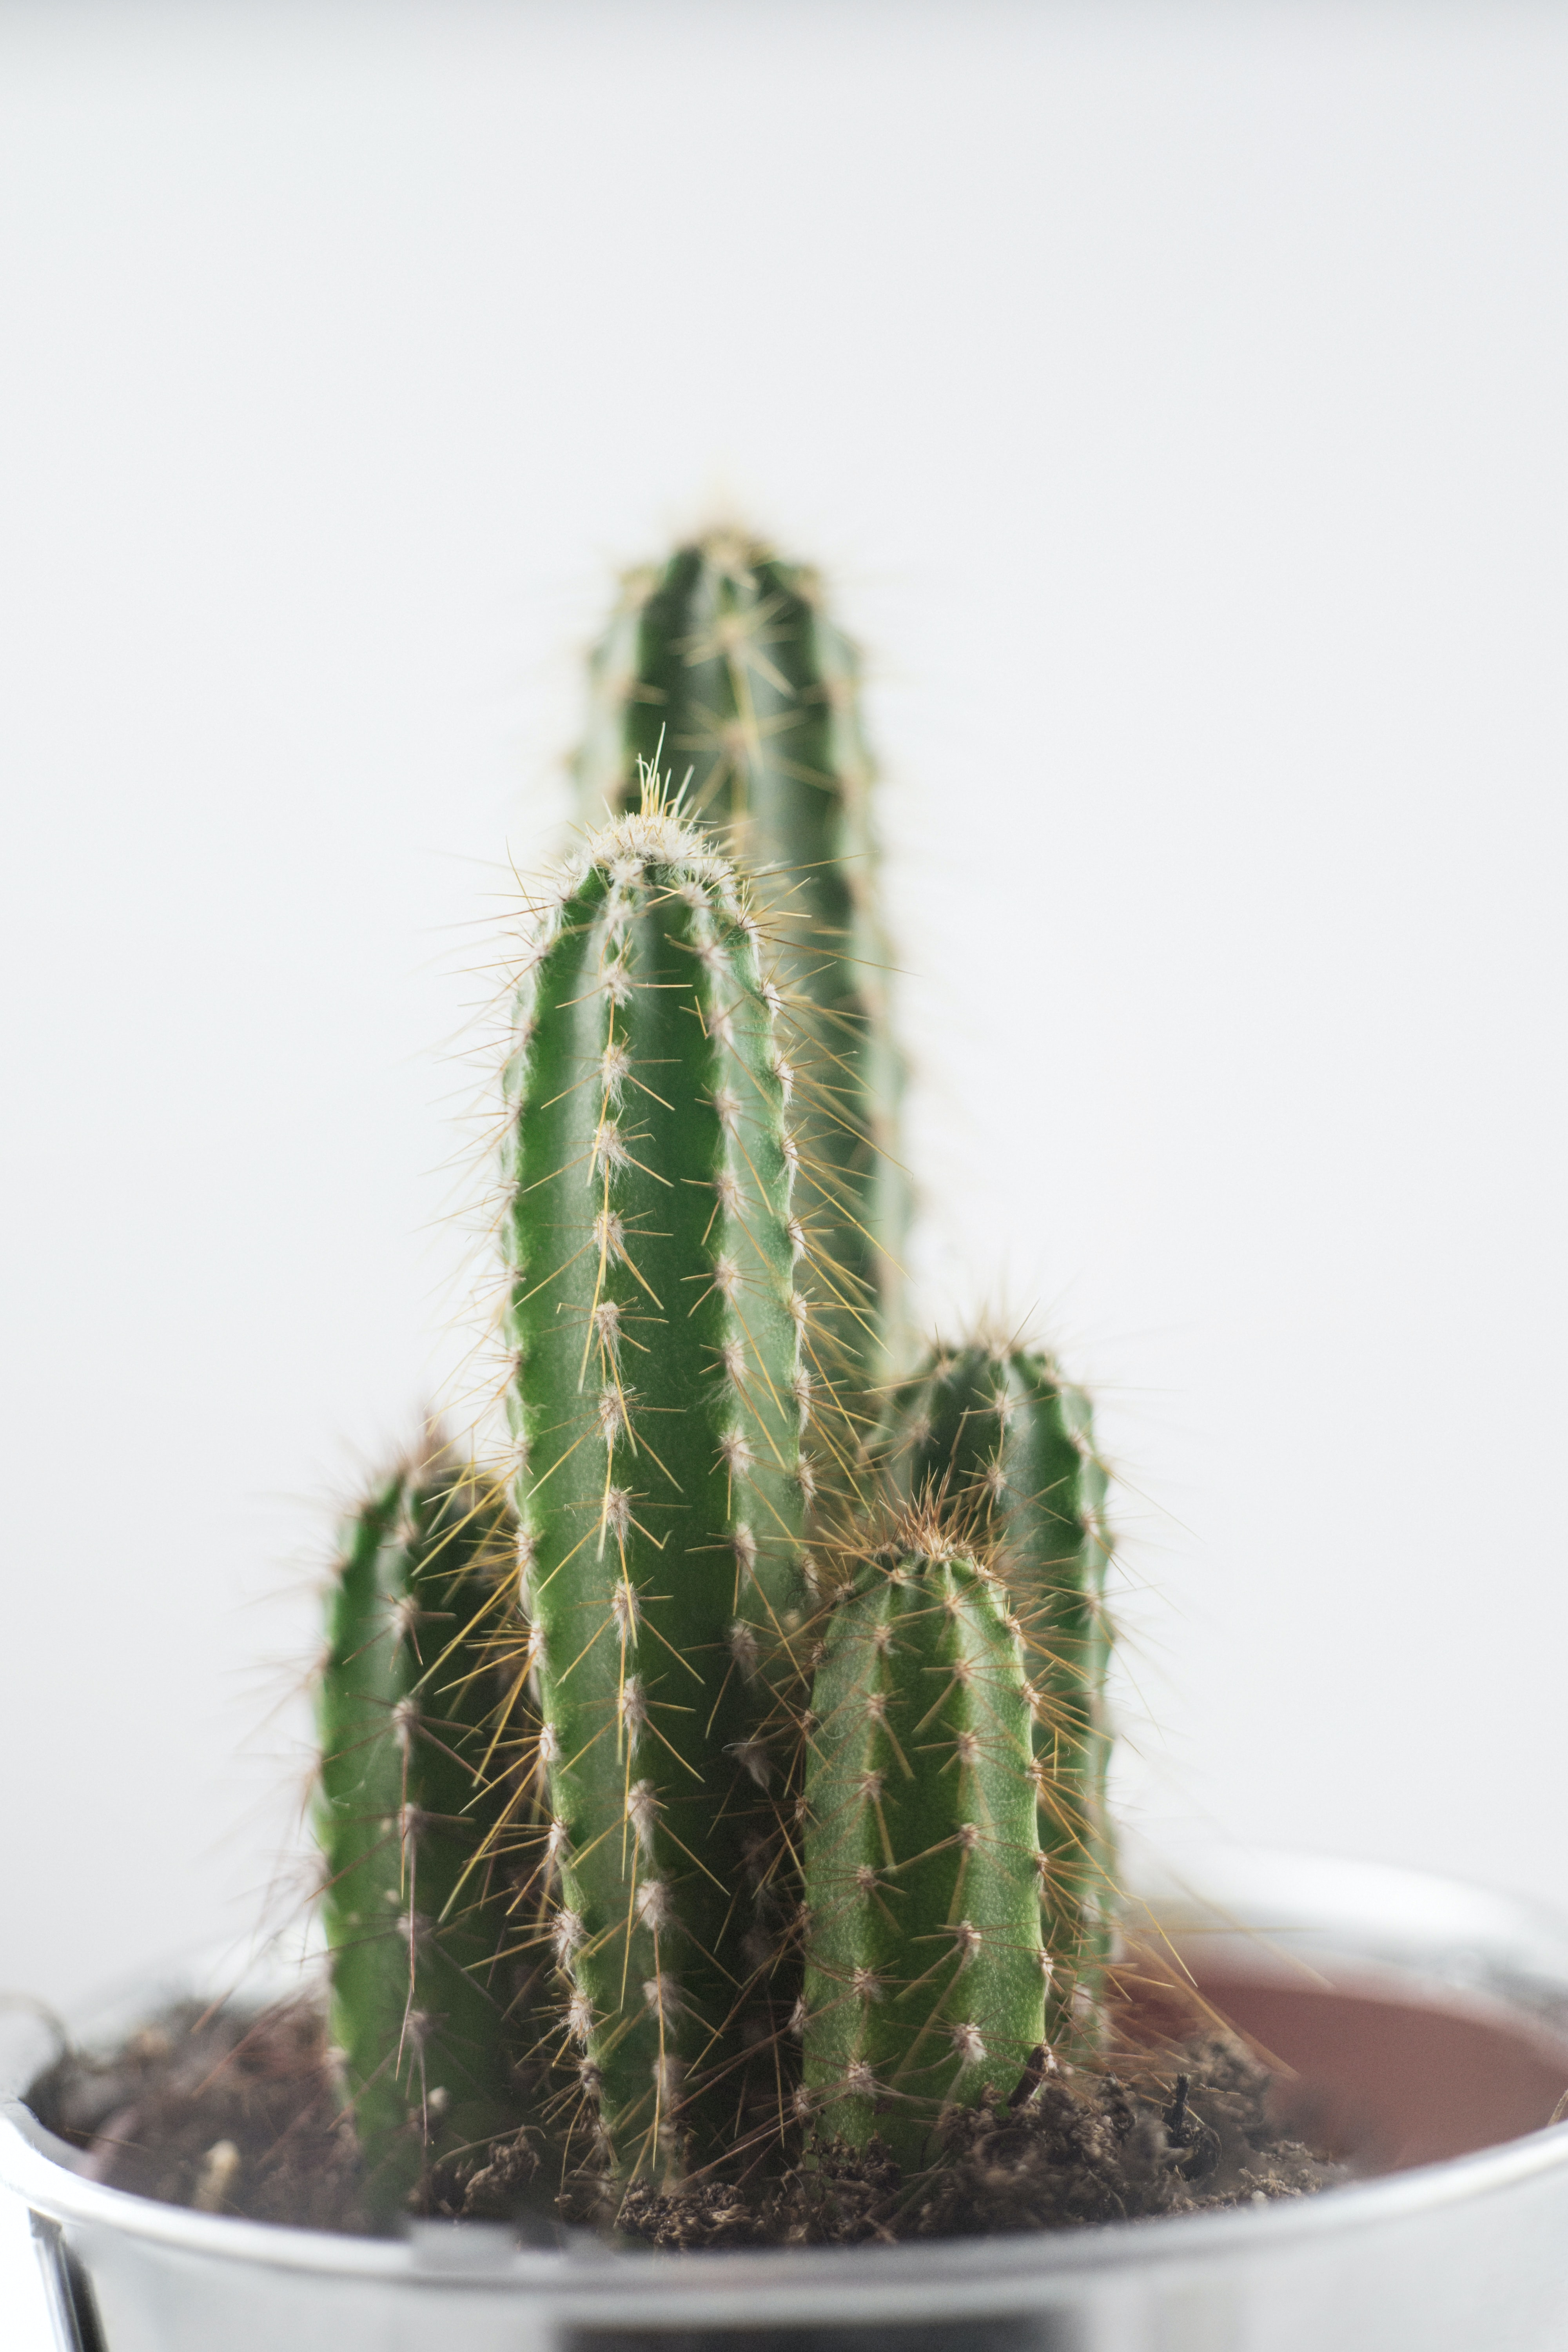 green cactus plant on white pot